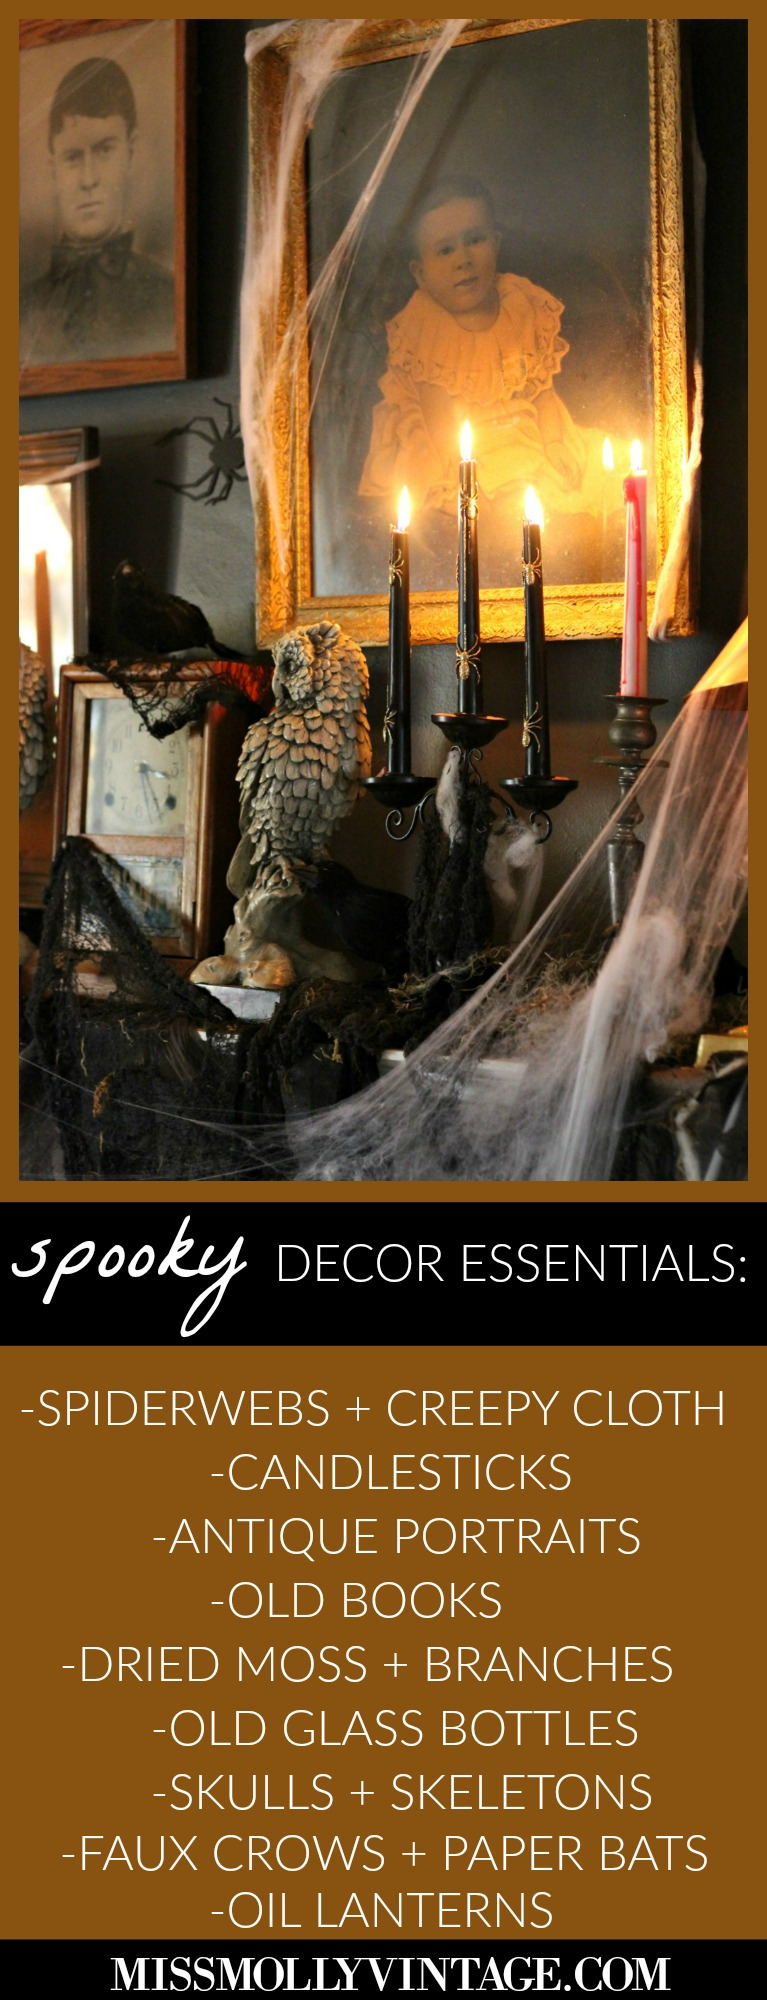 Spooky Halloween Decorating on a Budget